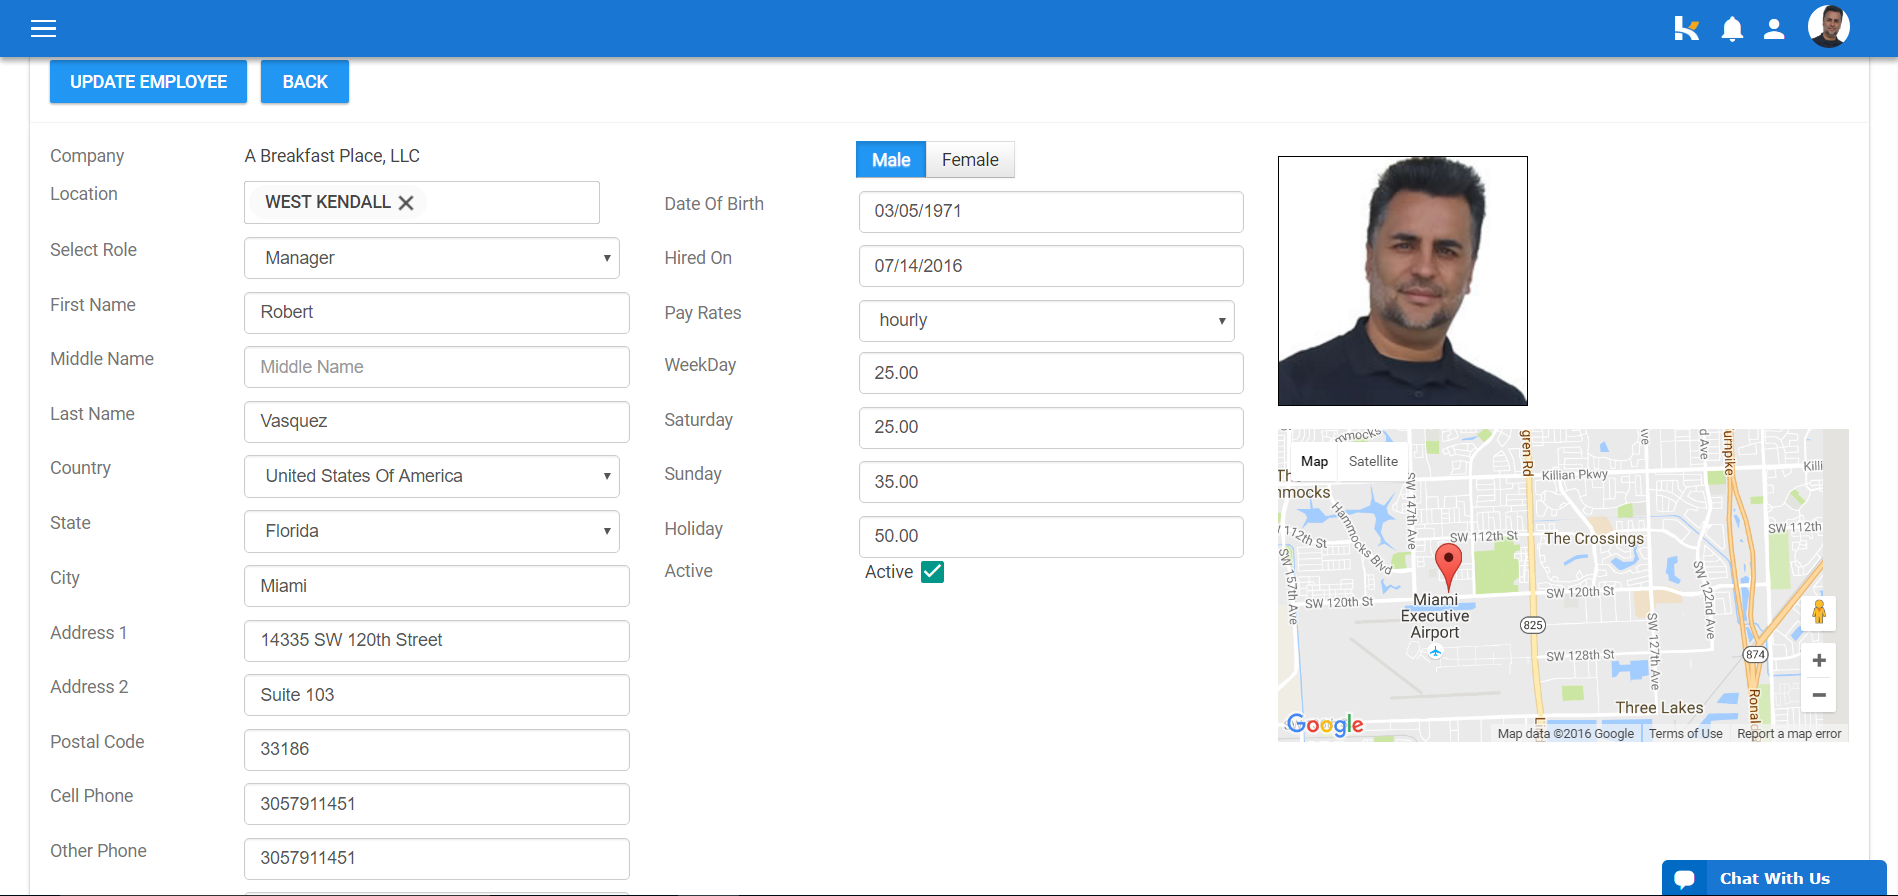 Employee profiles can be added for each location, including their pay rate